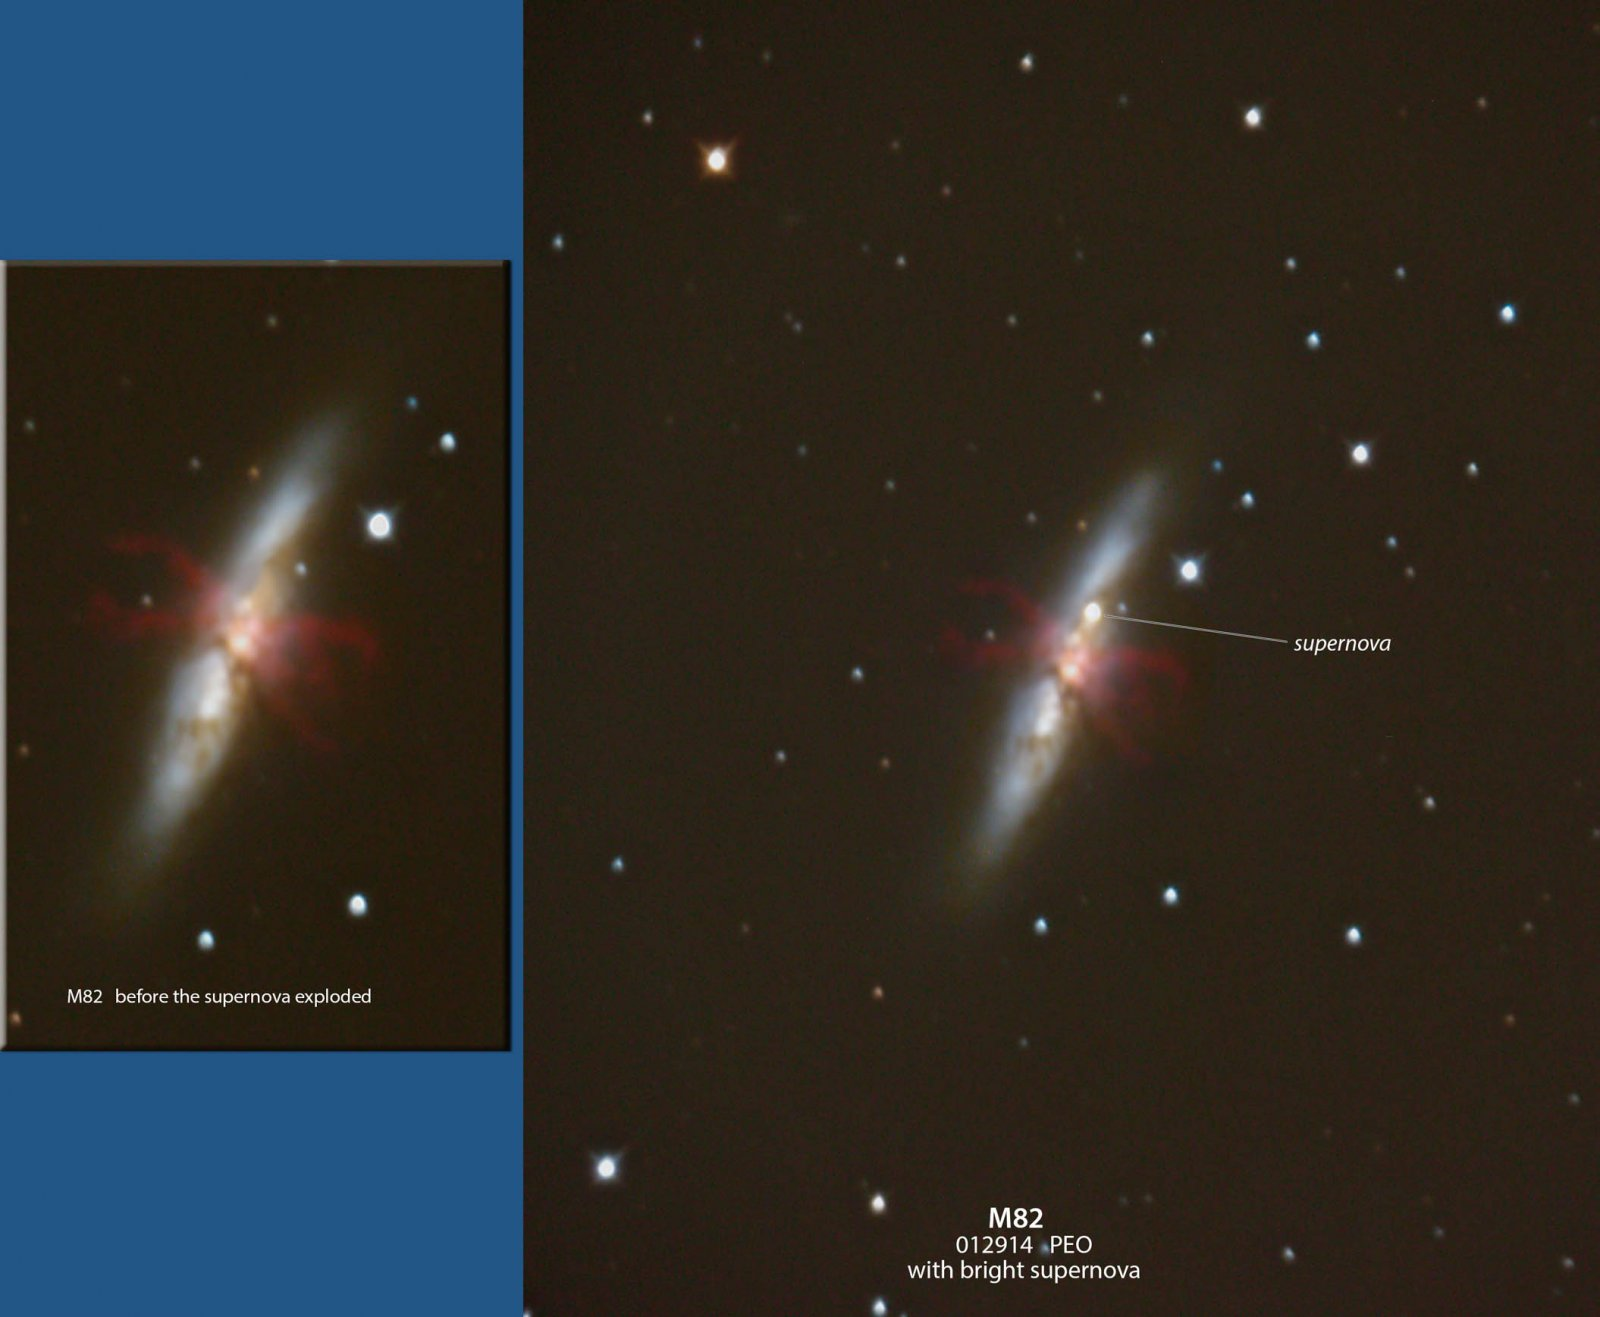 M82 Supernova, before and after